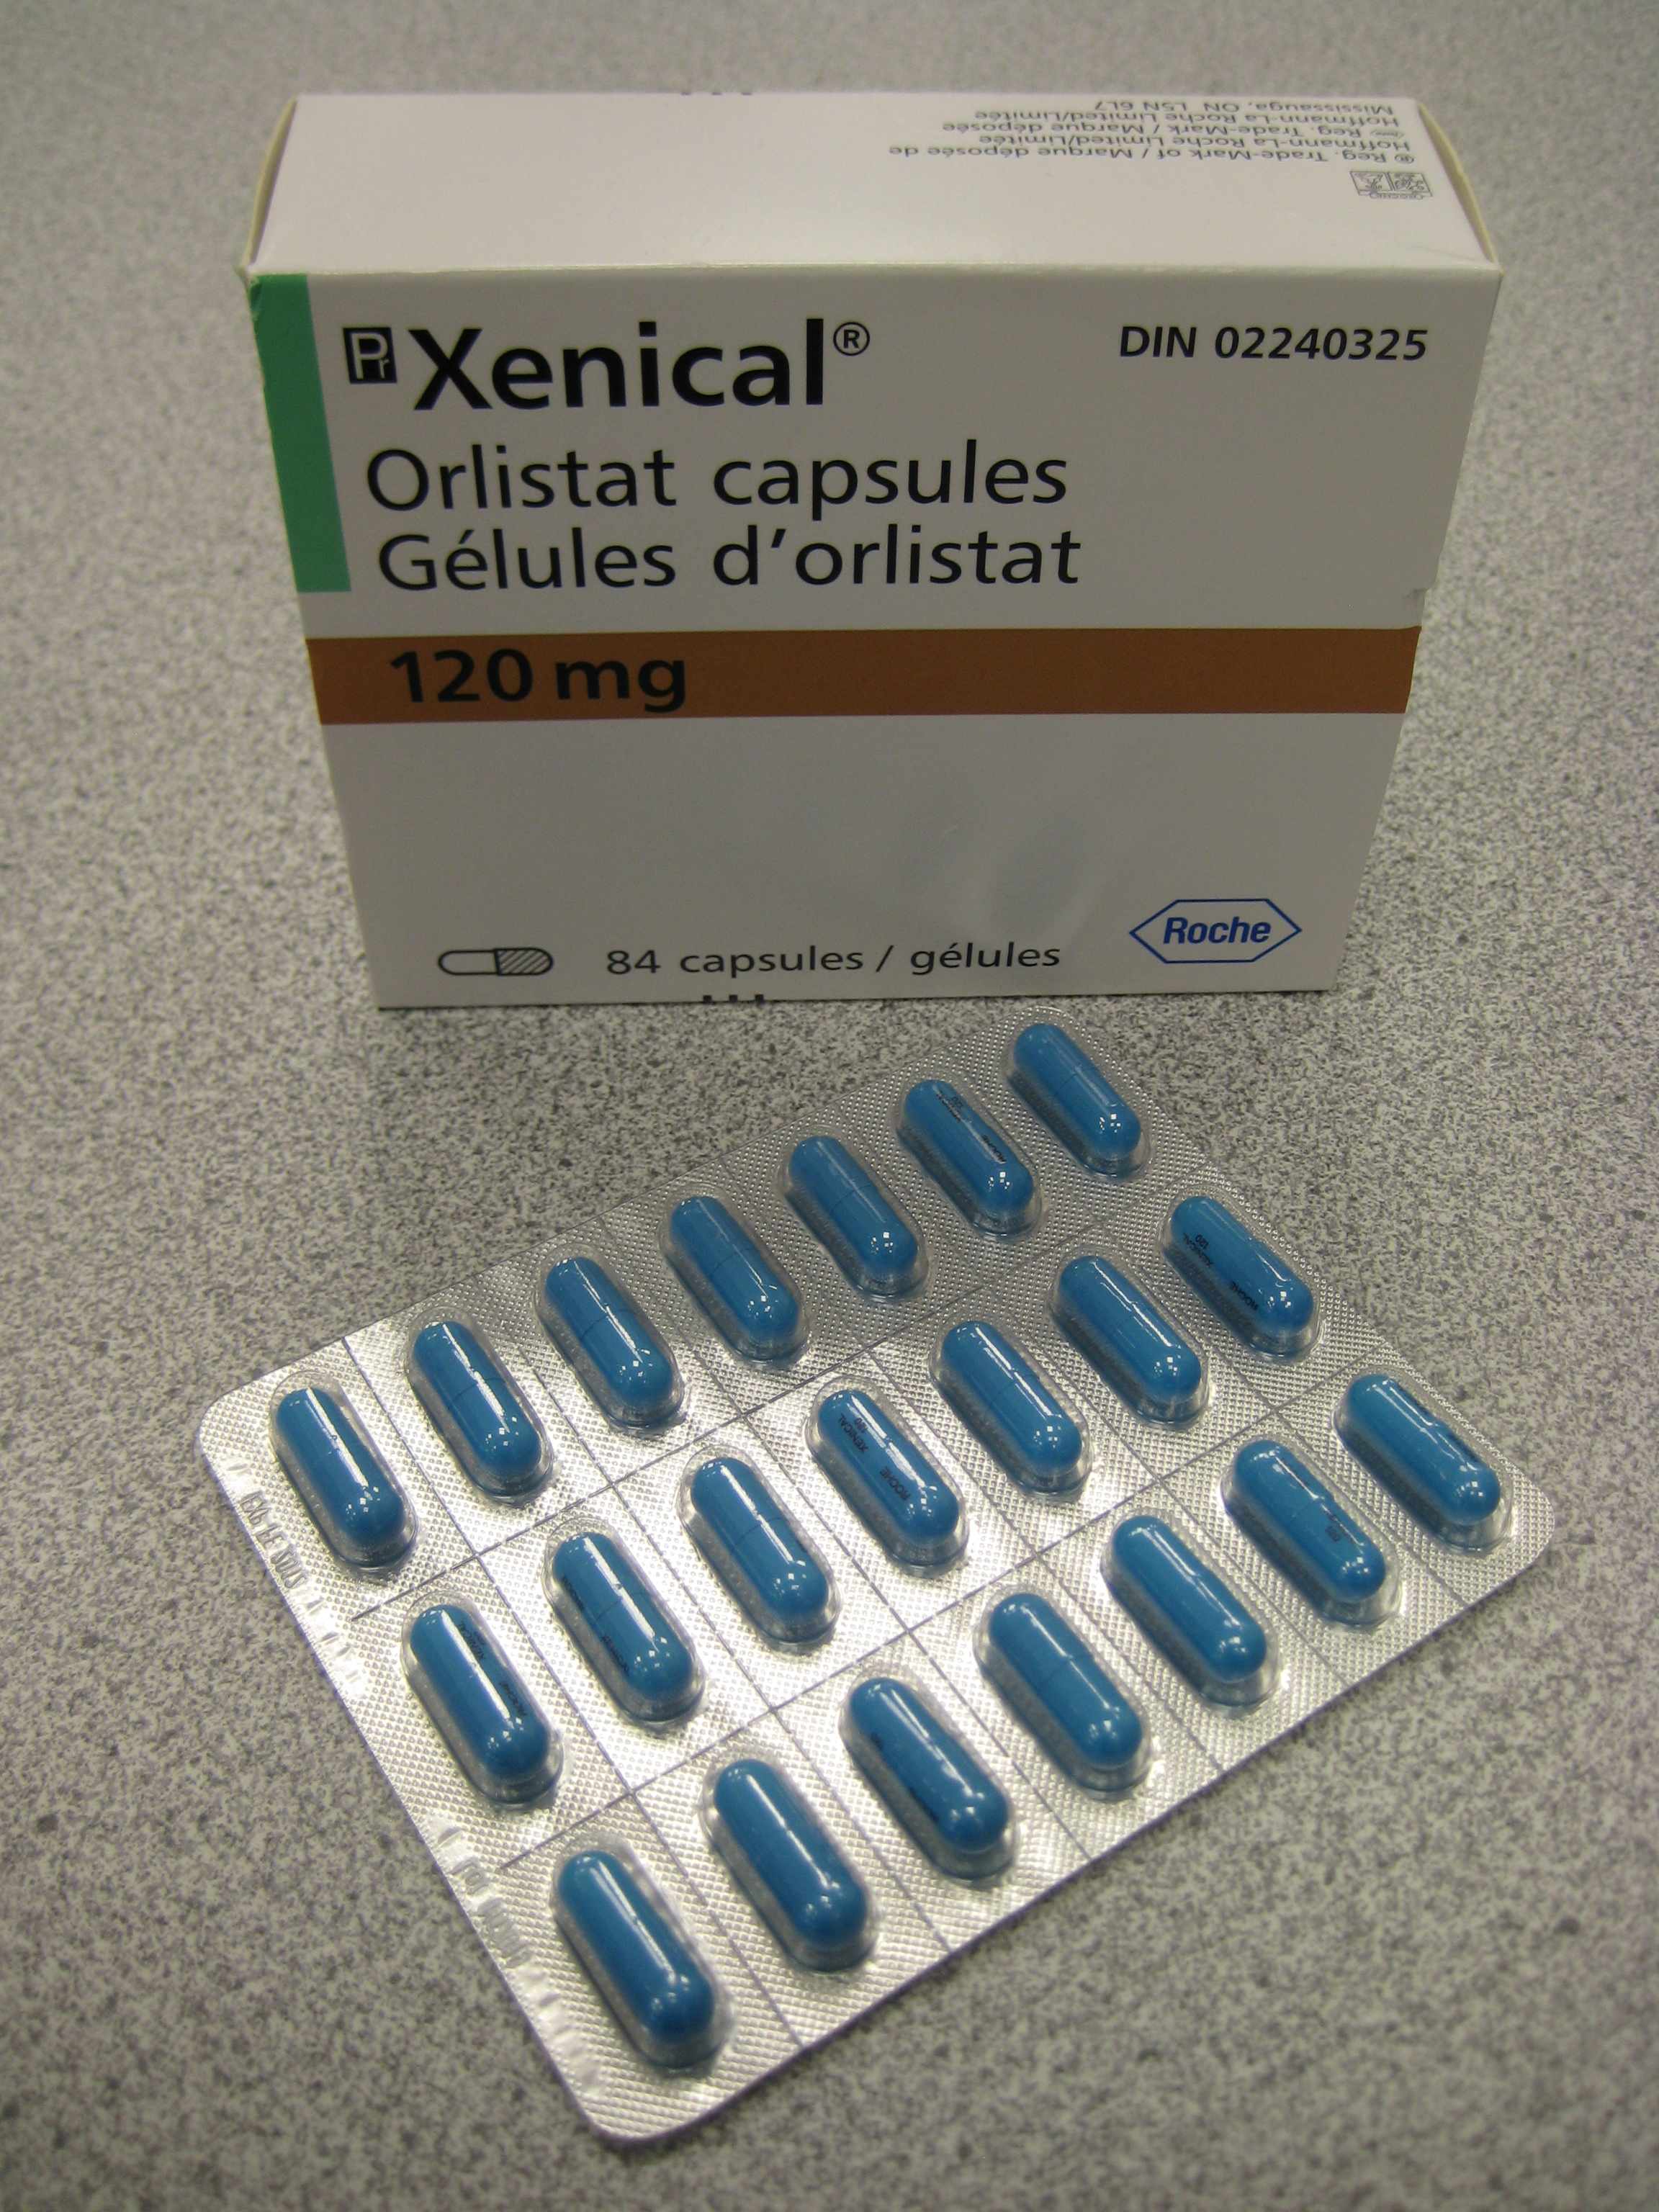 Read about orlistat (Xenical, alli) the weight loss drug. Alli is  120 mg (Xenical).<br /> STORAGE: Capsules should be stored at room temperature, 15-30 C (59-86 F).